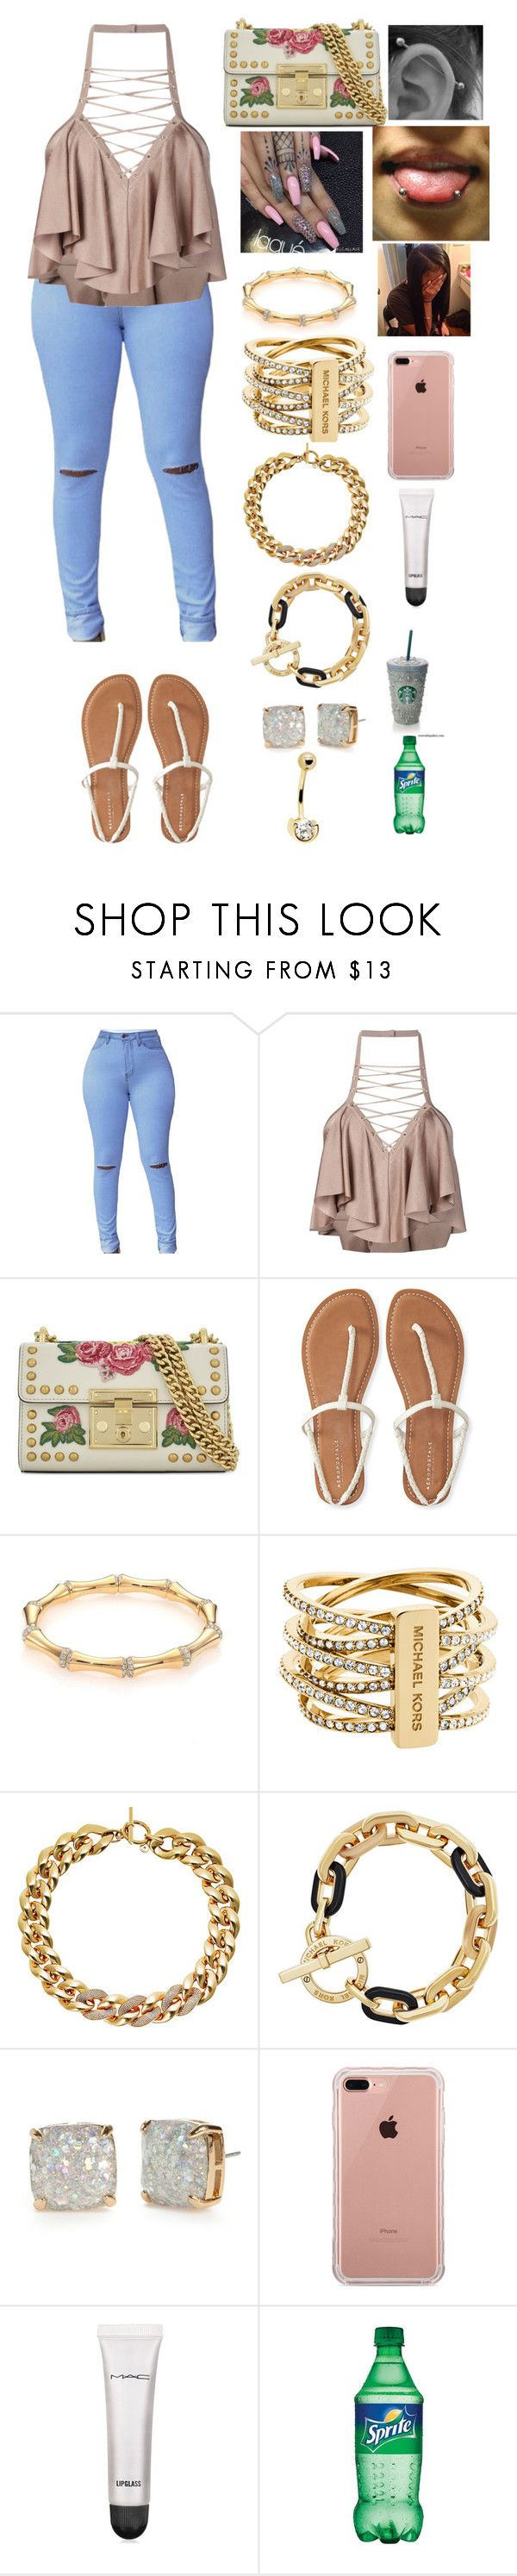 """"" by manija-jones on Polyvore featuring Balmain, Gucci, Aéropostale, Michael Kors, Kate Spade, Belkin and MAC Cosmetics"